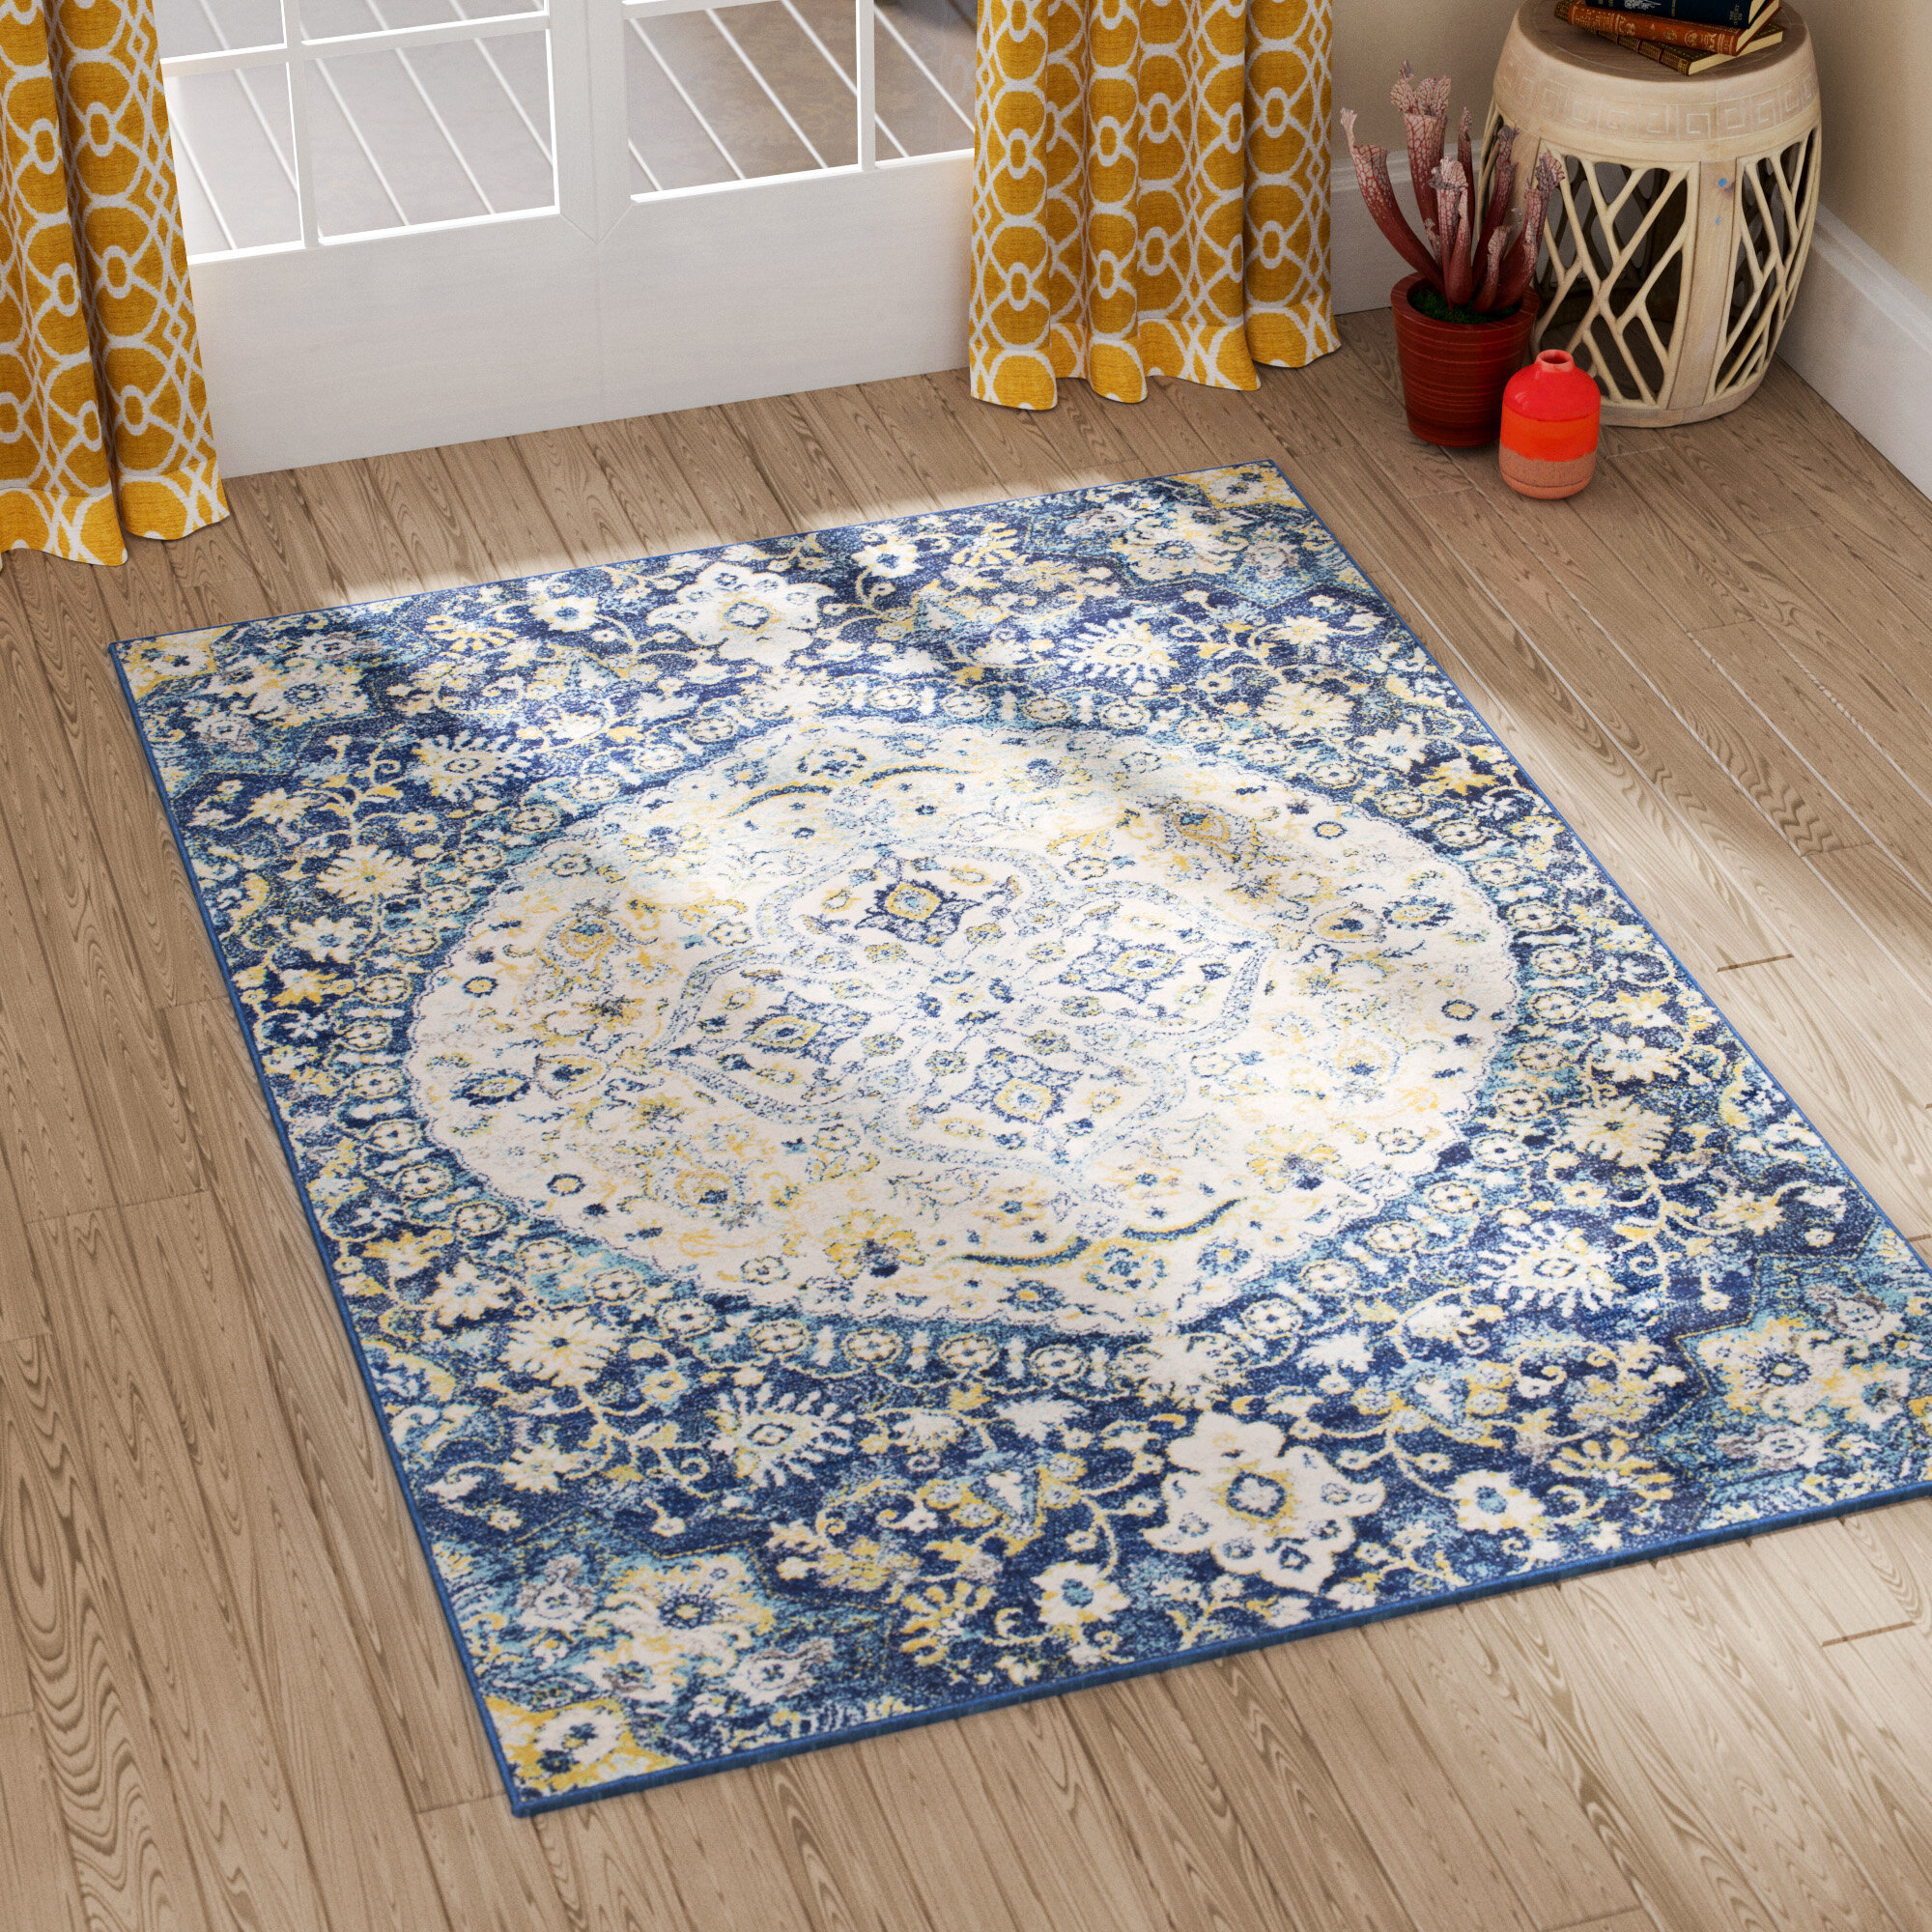 modern cleaning innovative rug design houston oriental images beautiful tx trendy awesome rugs of vancouver home